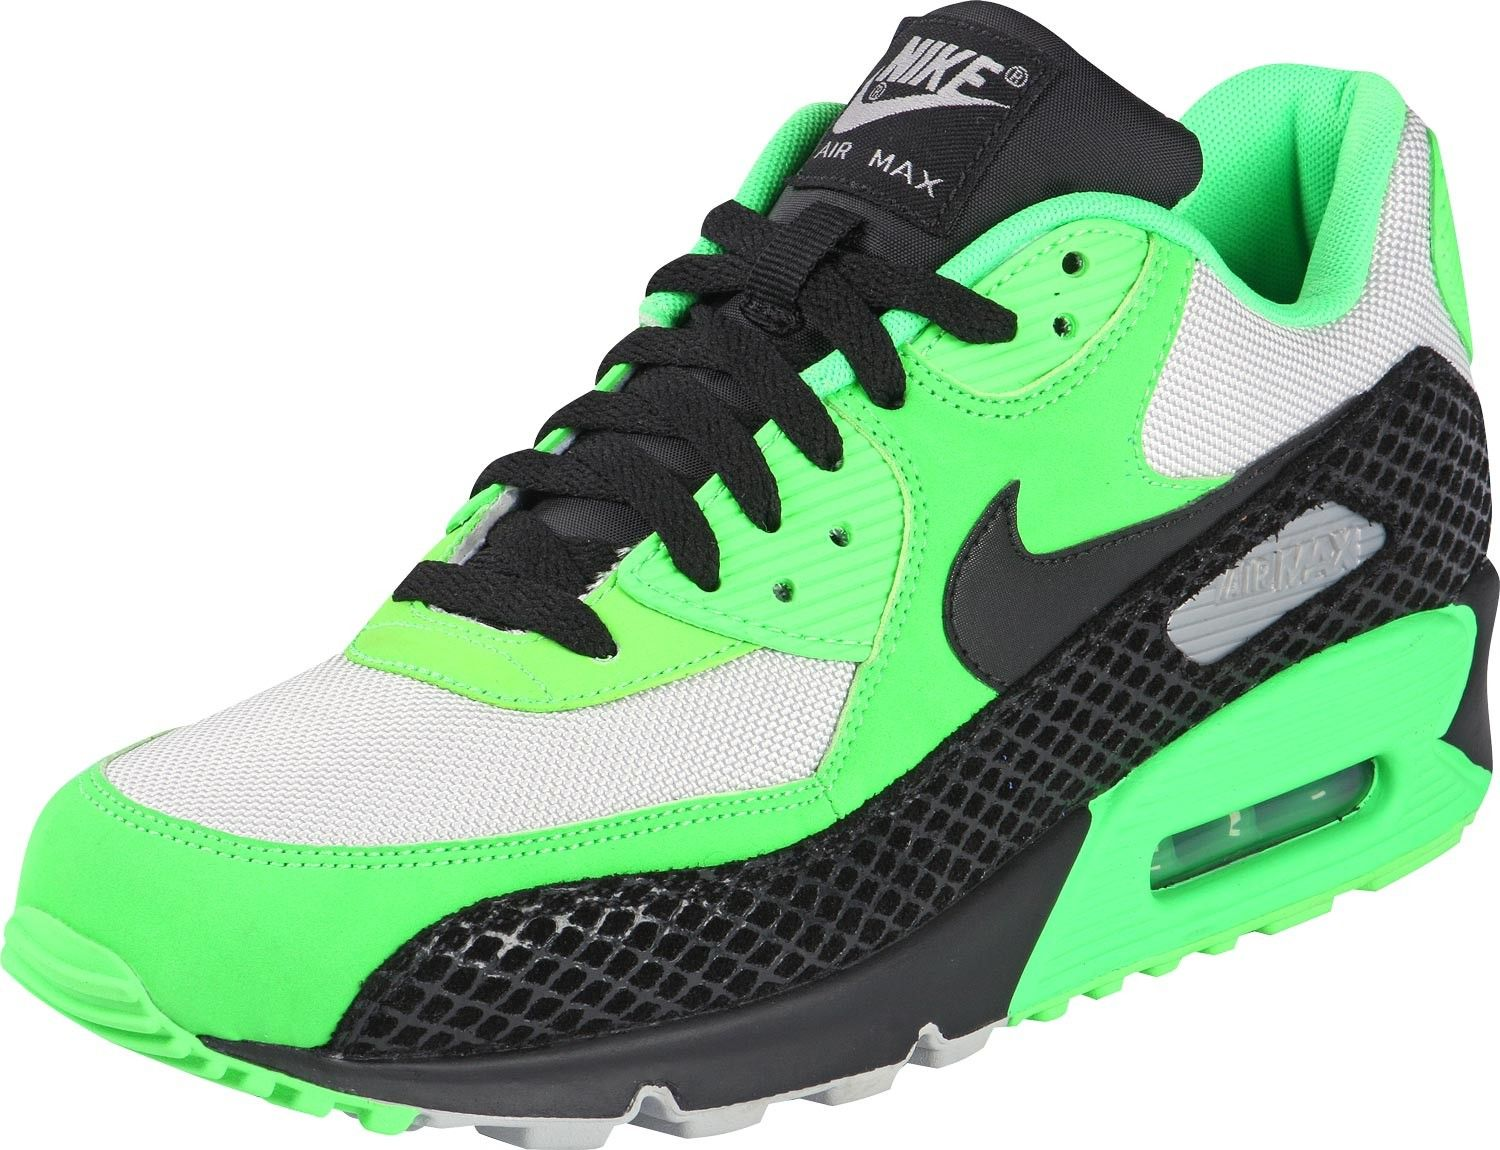 Nike Air Max 90 Premium shoe for men Neon Green Black HOT